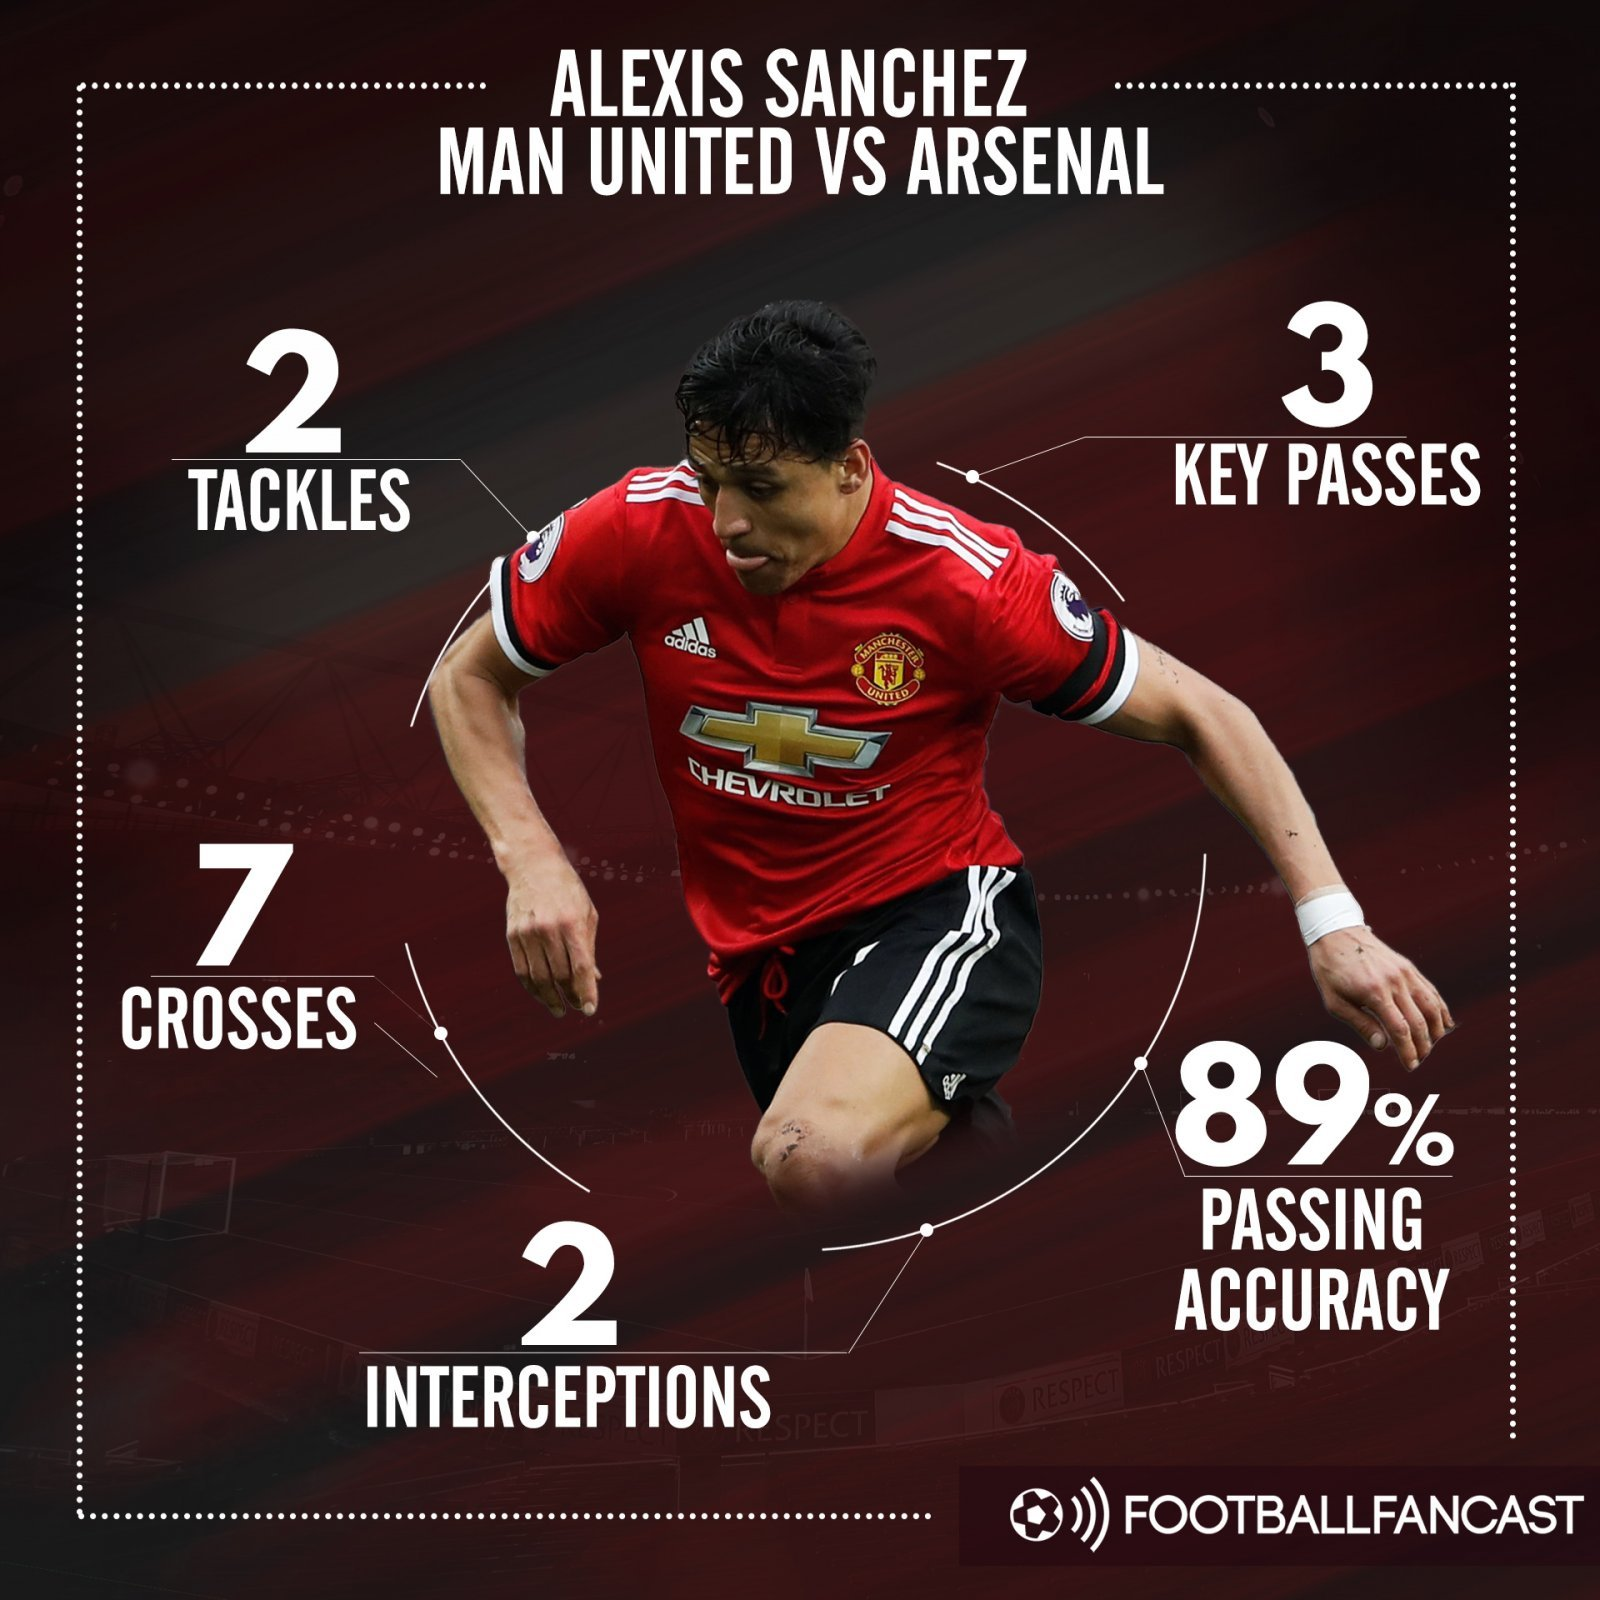 Alexis Sanchez's stats from Man United's win over Arsenal